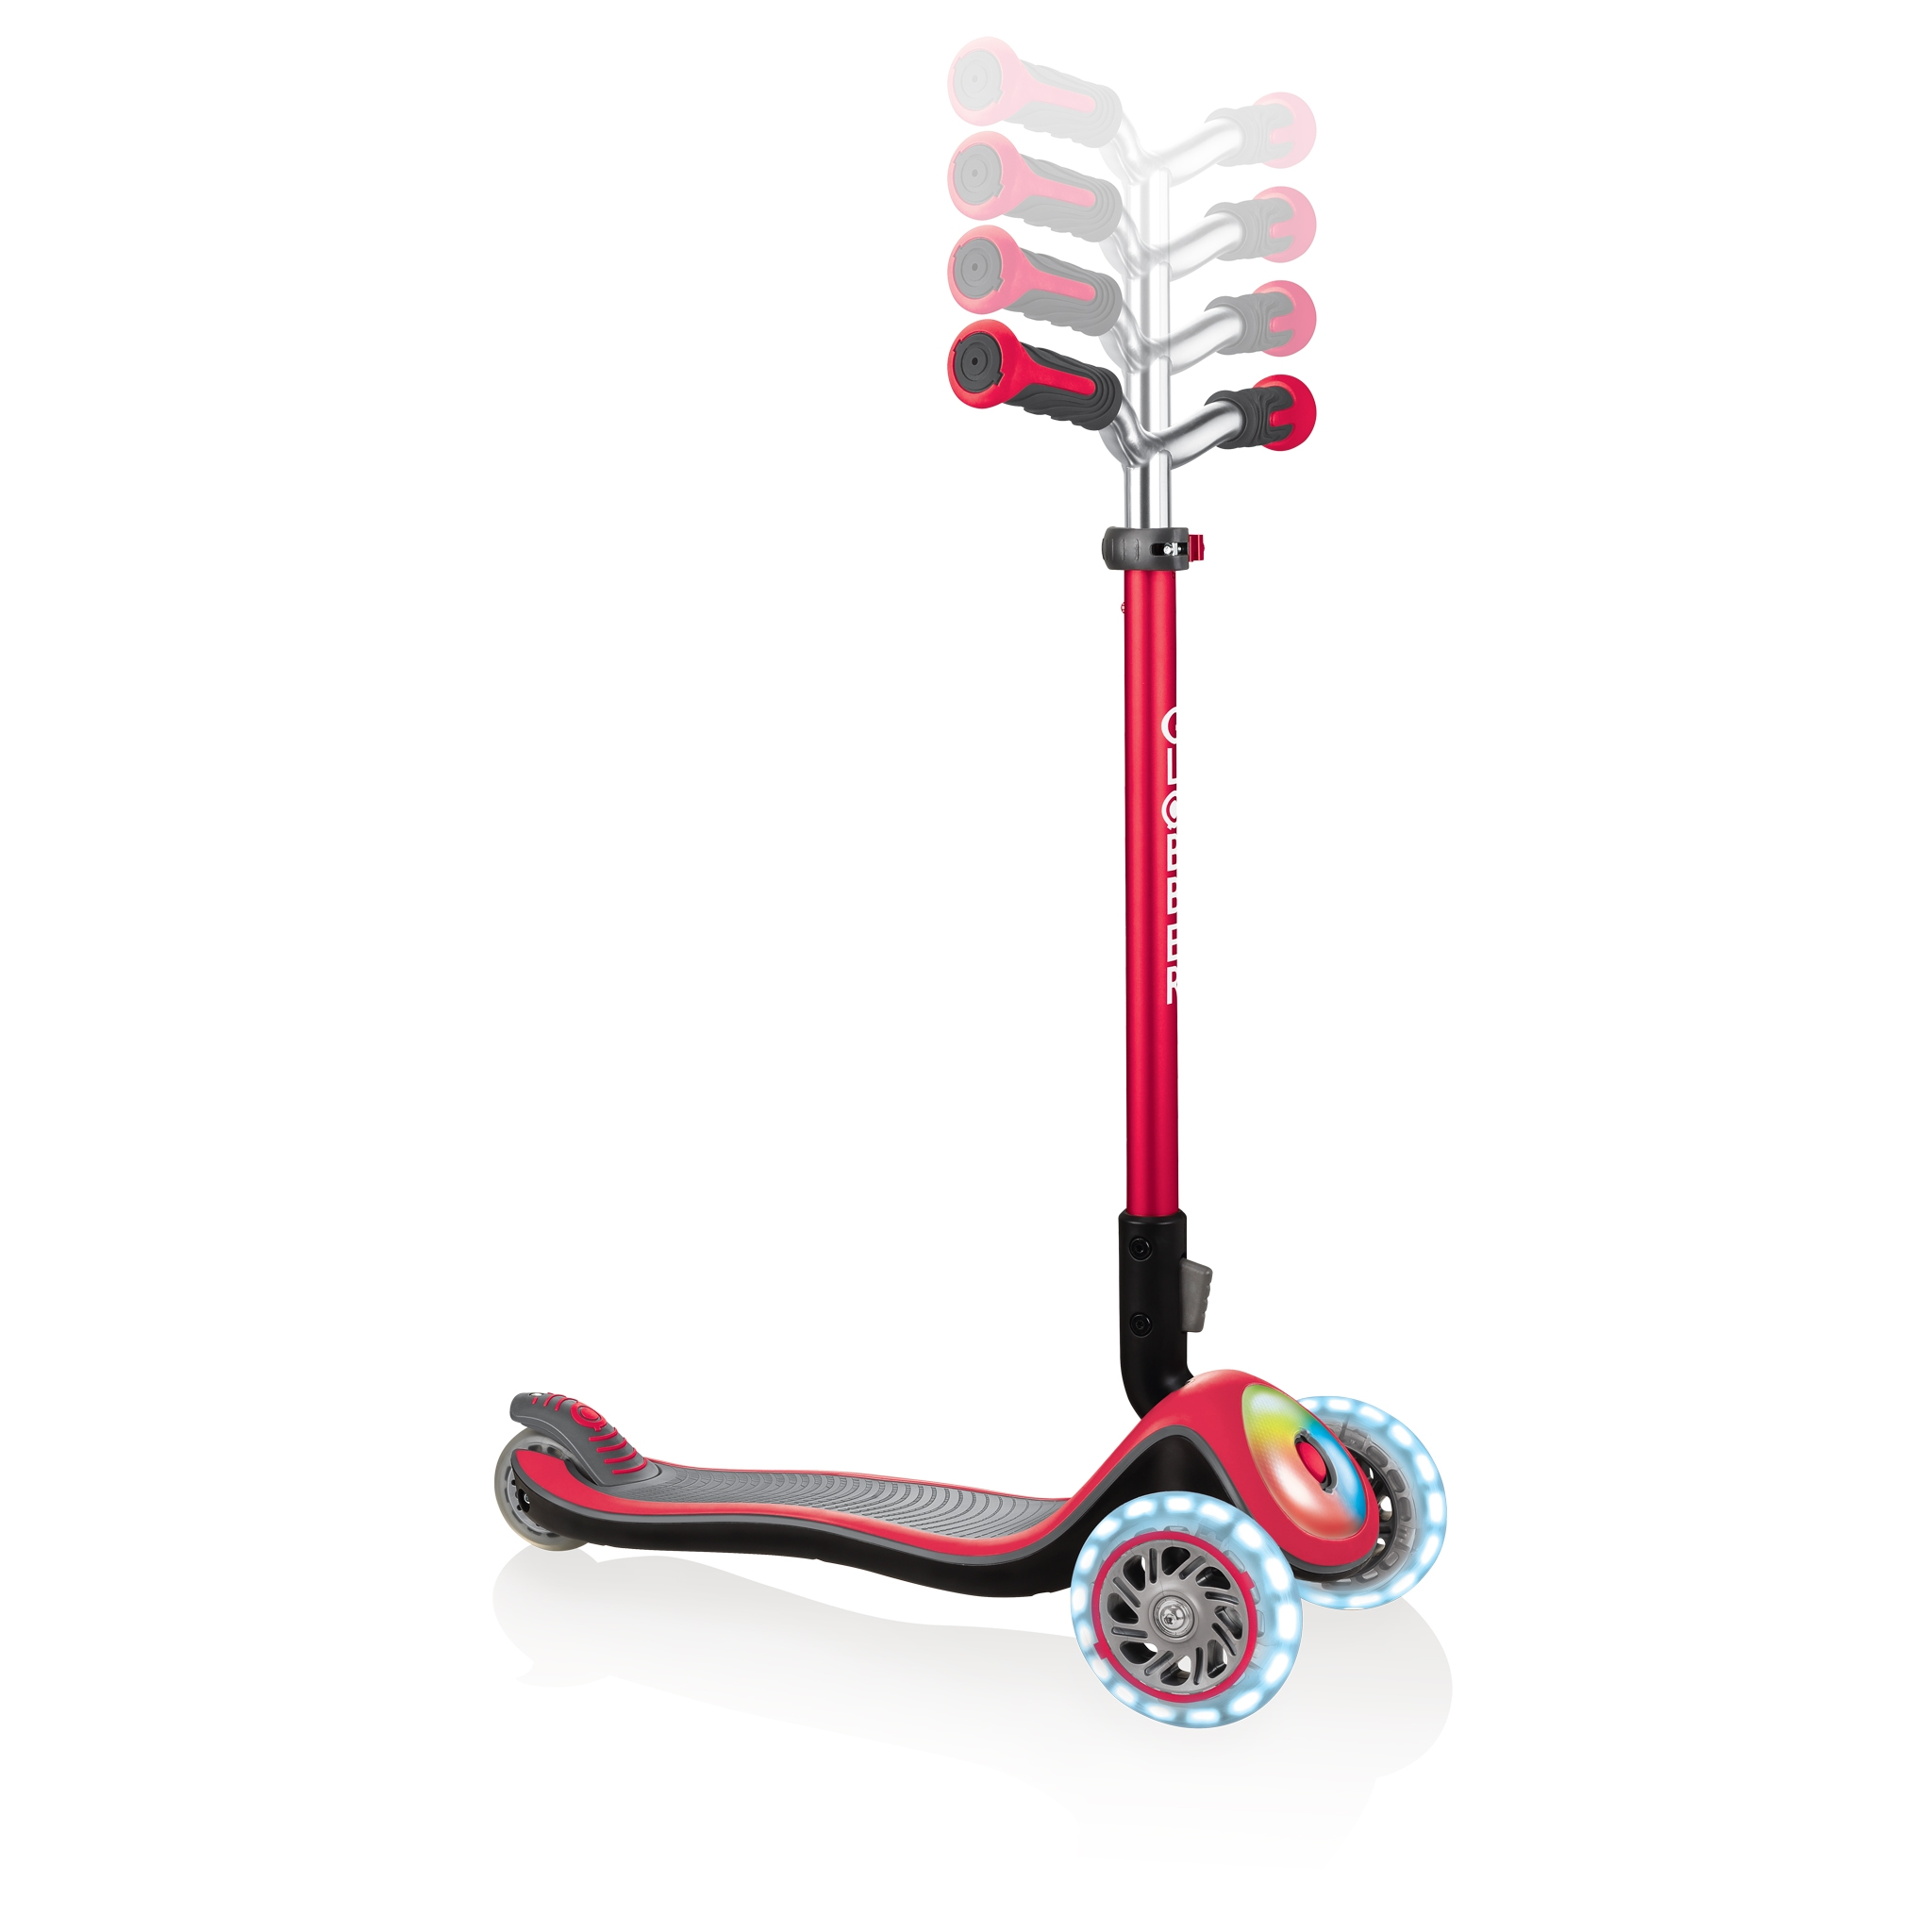 Globber-ELITE-PRIME-best-3-wheel-foldable-scooter-for-kids-with-adjustable-t-bar-new-red